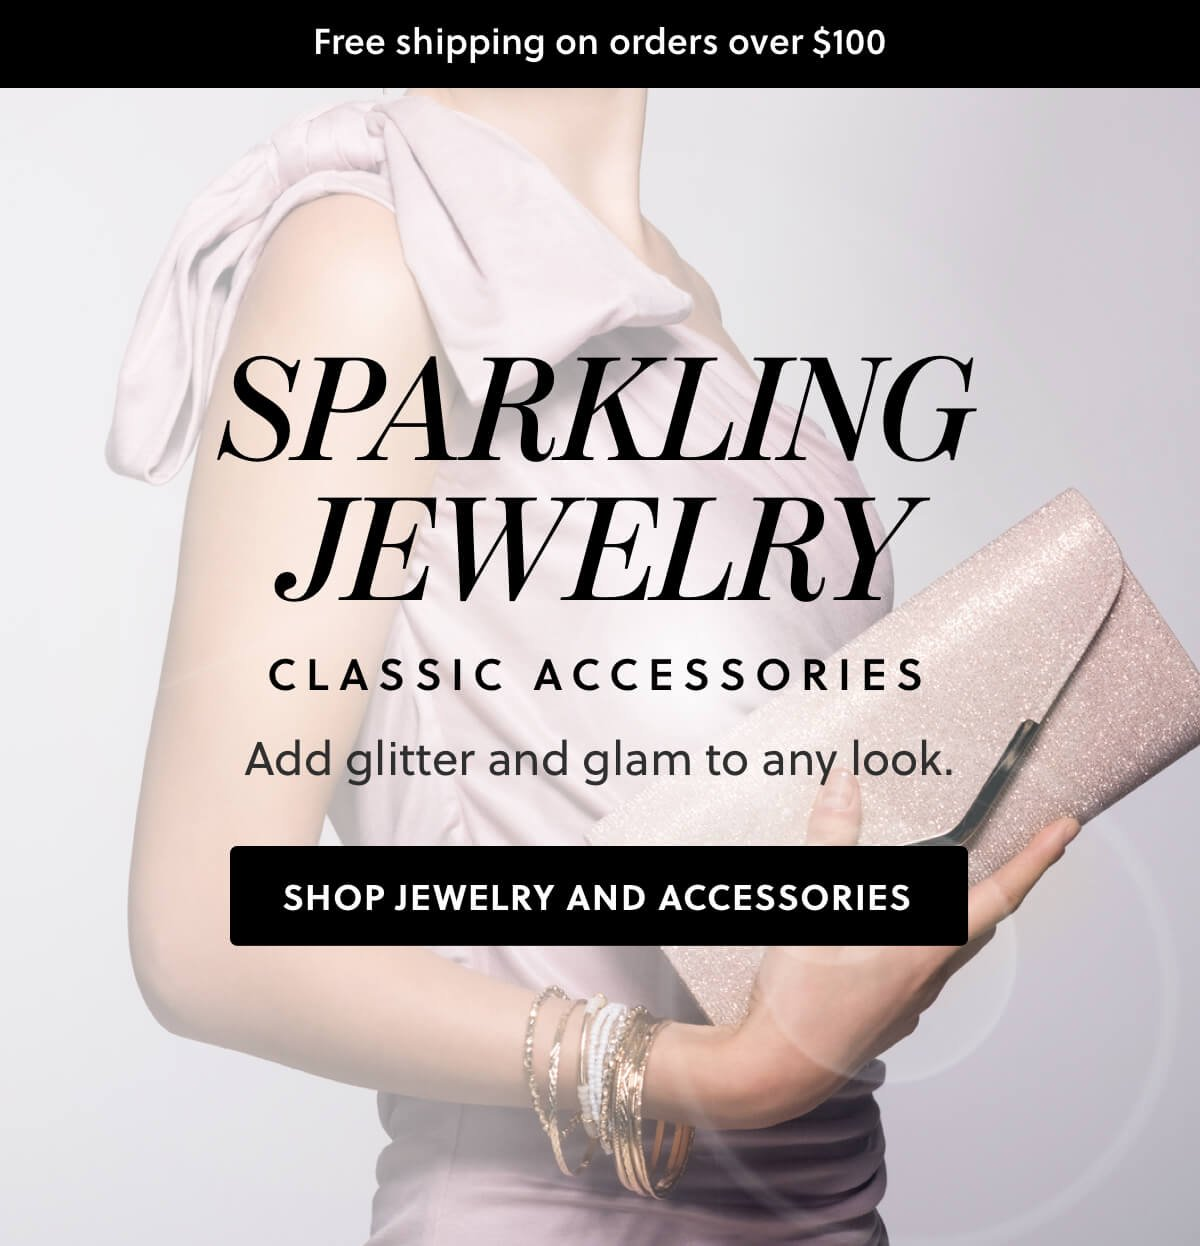 sparkling jewelry. classic accessories. add glitter and glam to any look. shop jewelry and accessories